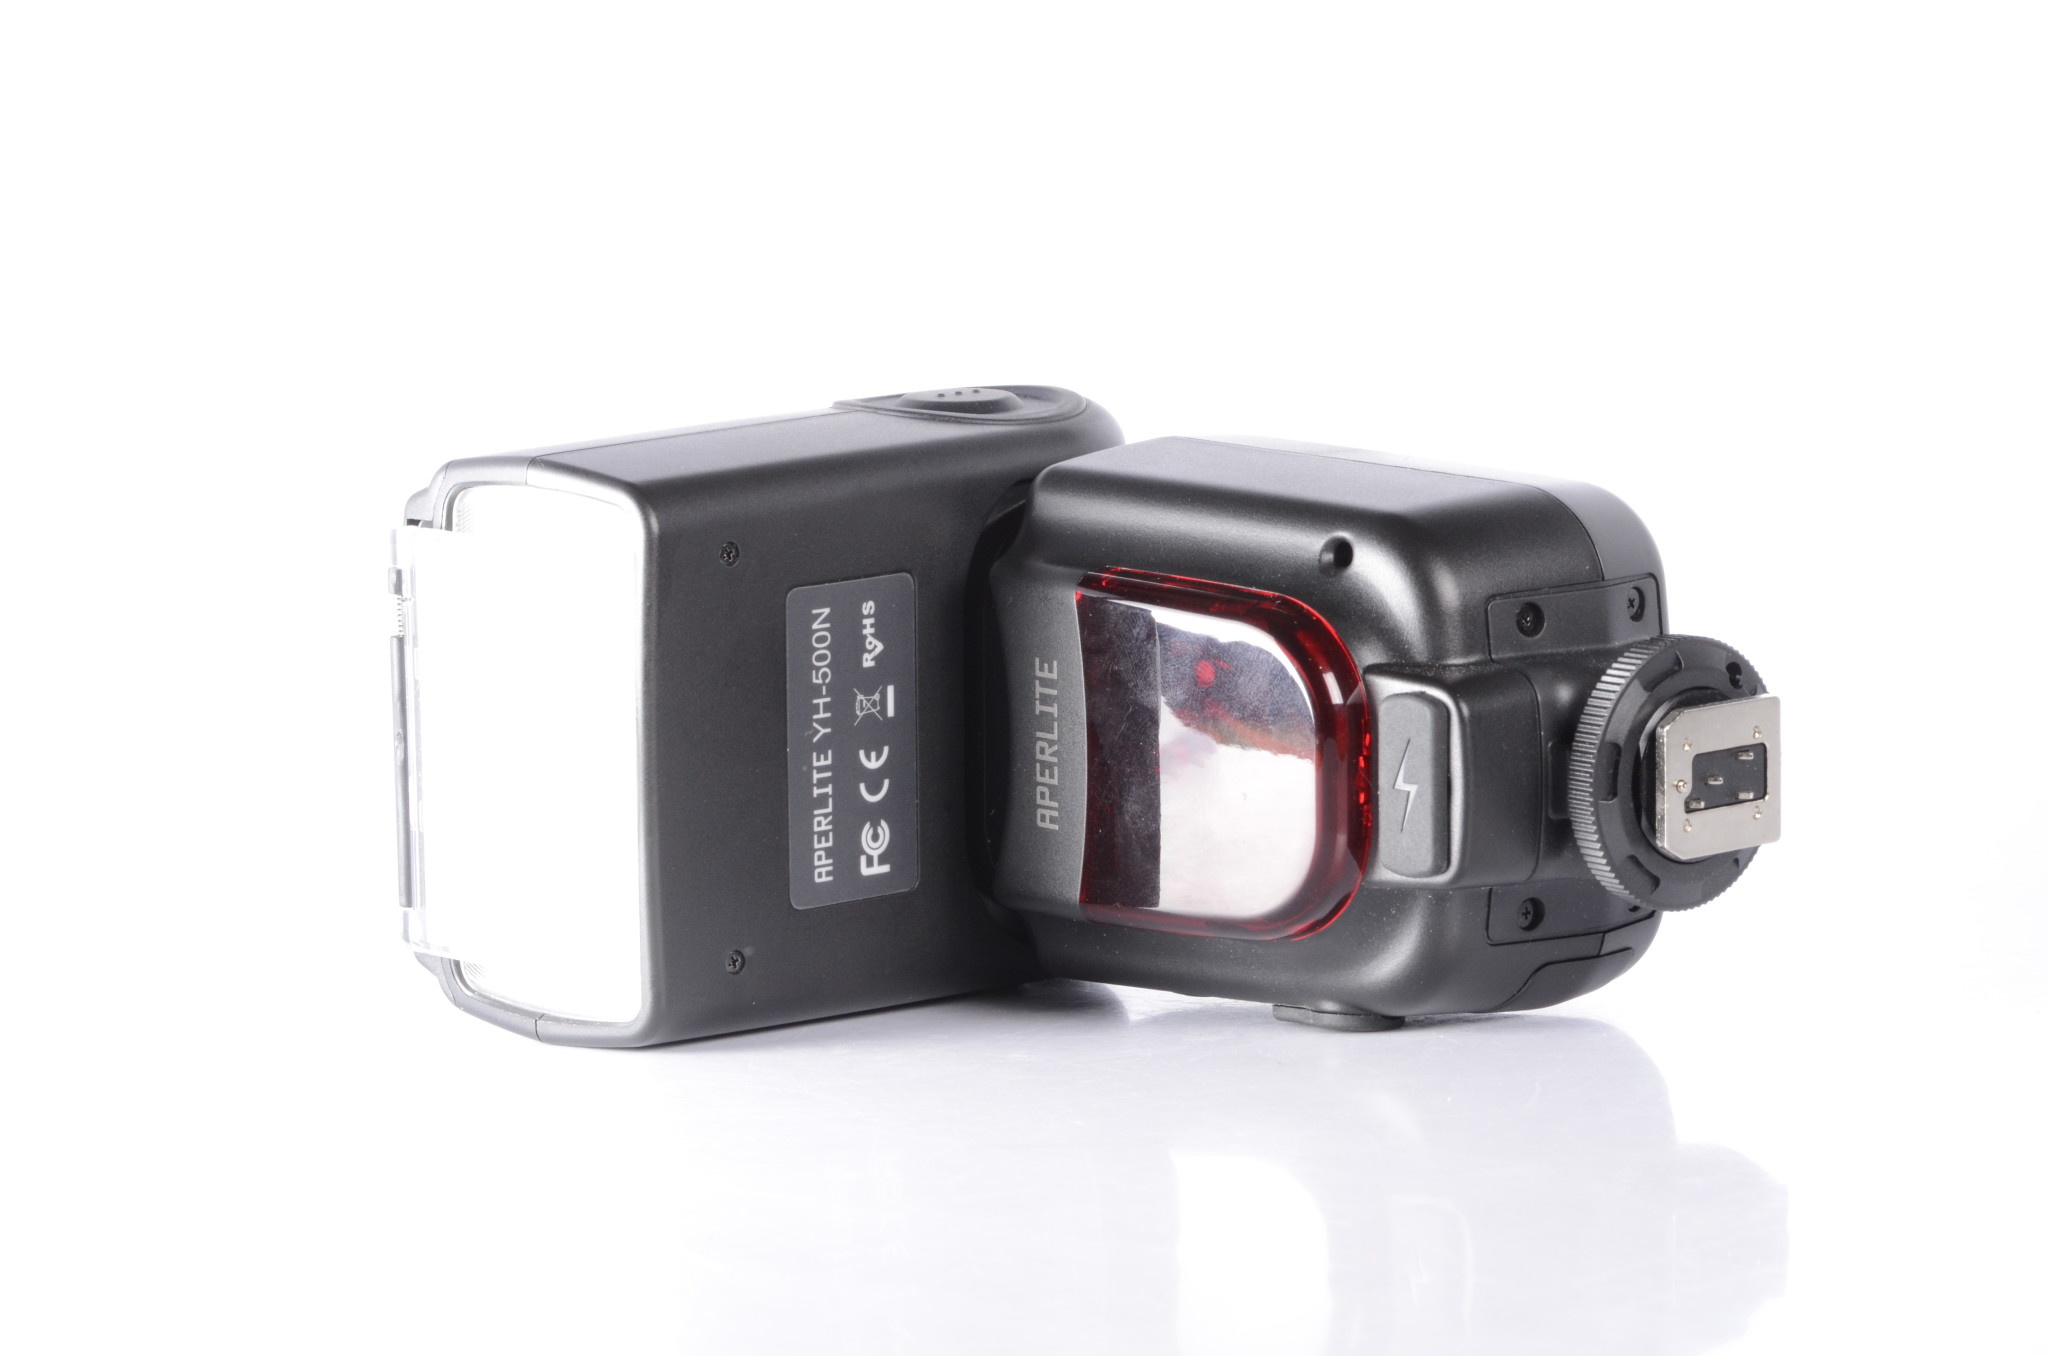 Aperlite Aperlite YH-500N Flash for Nikon *